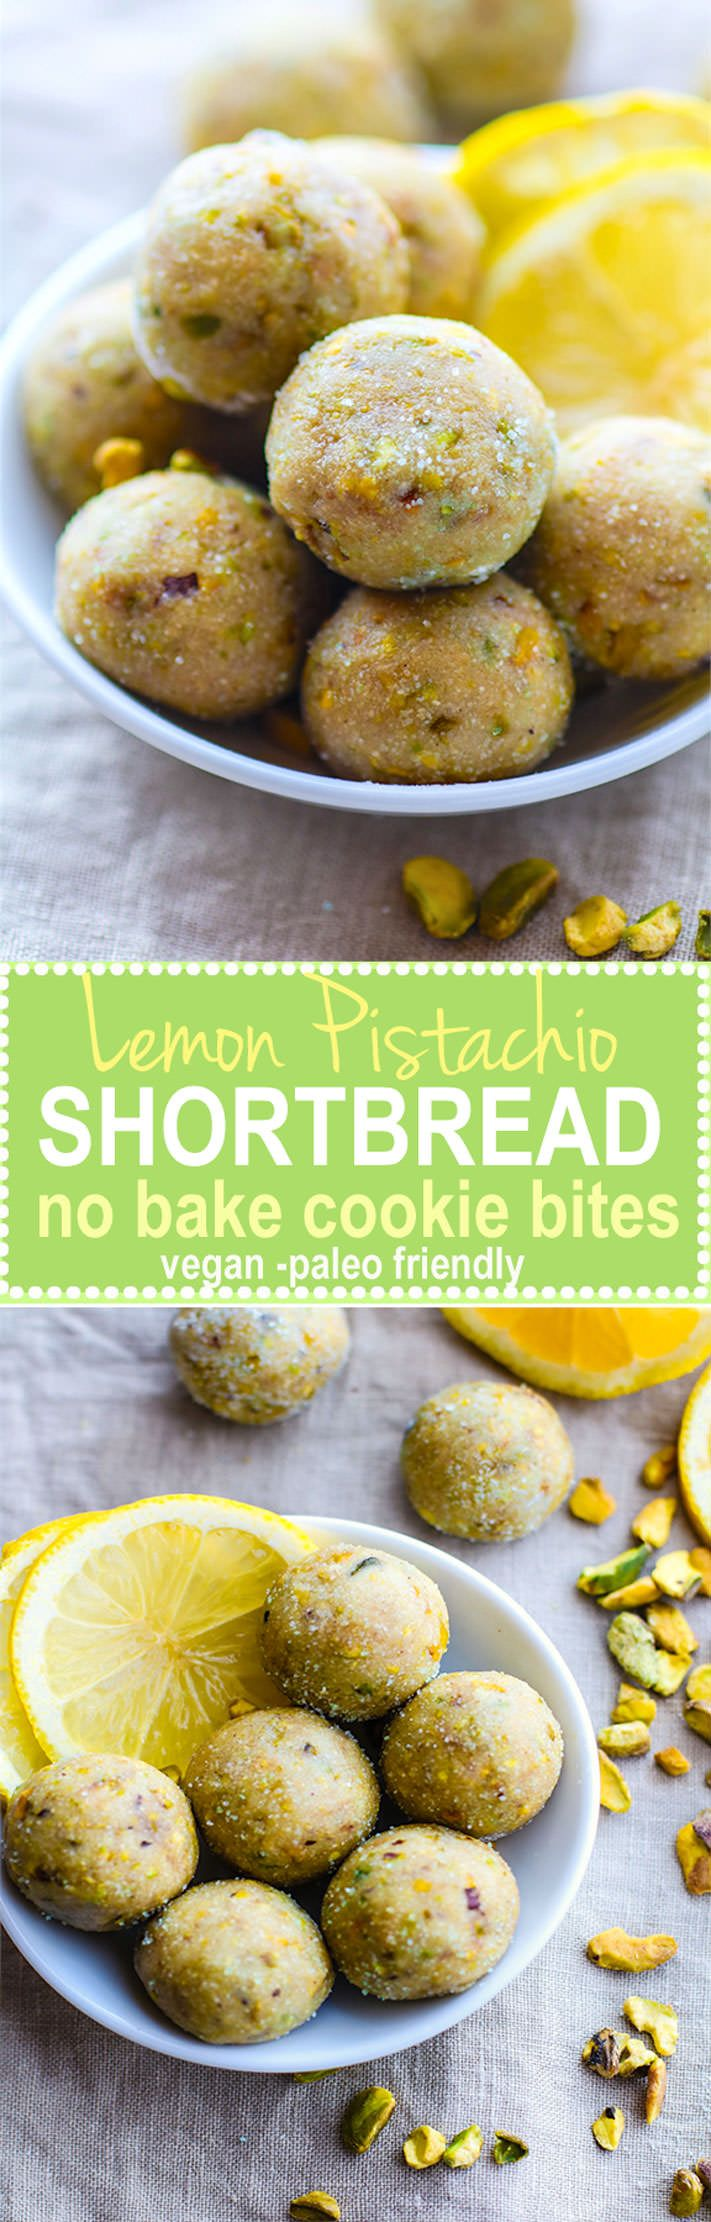 Bake Lemon Pistachio Shortbread Cookie Bites! Vegan and Paleo friendly Bites that taste just like Shortbread Cookie but are actually good for you! Super easy to make, refreshing, light, and naturally gluten free! @cottercrunch